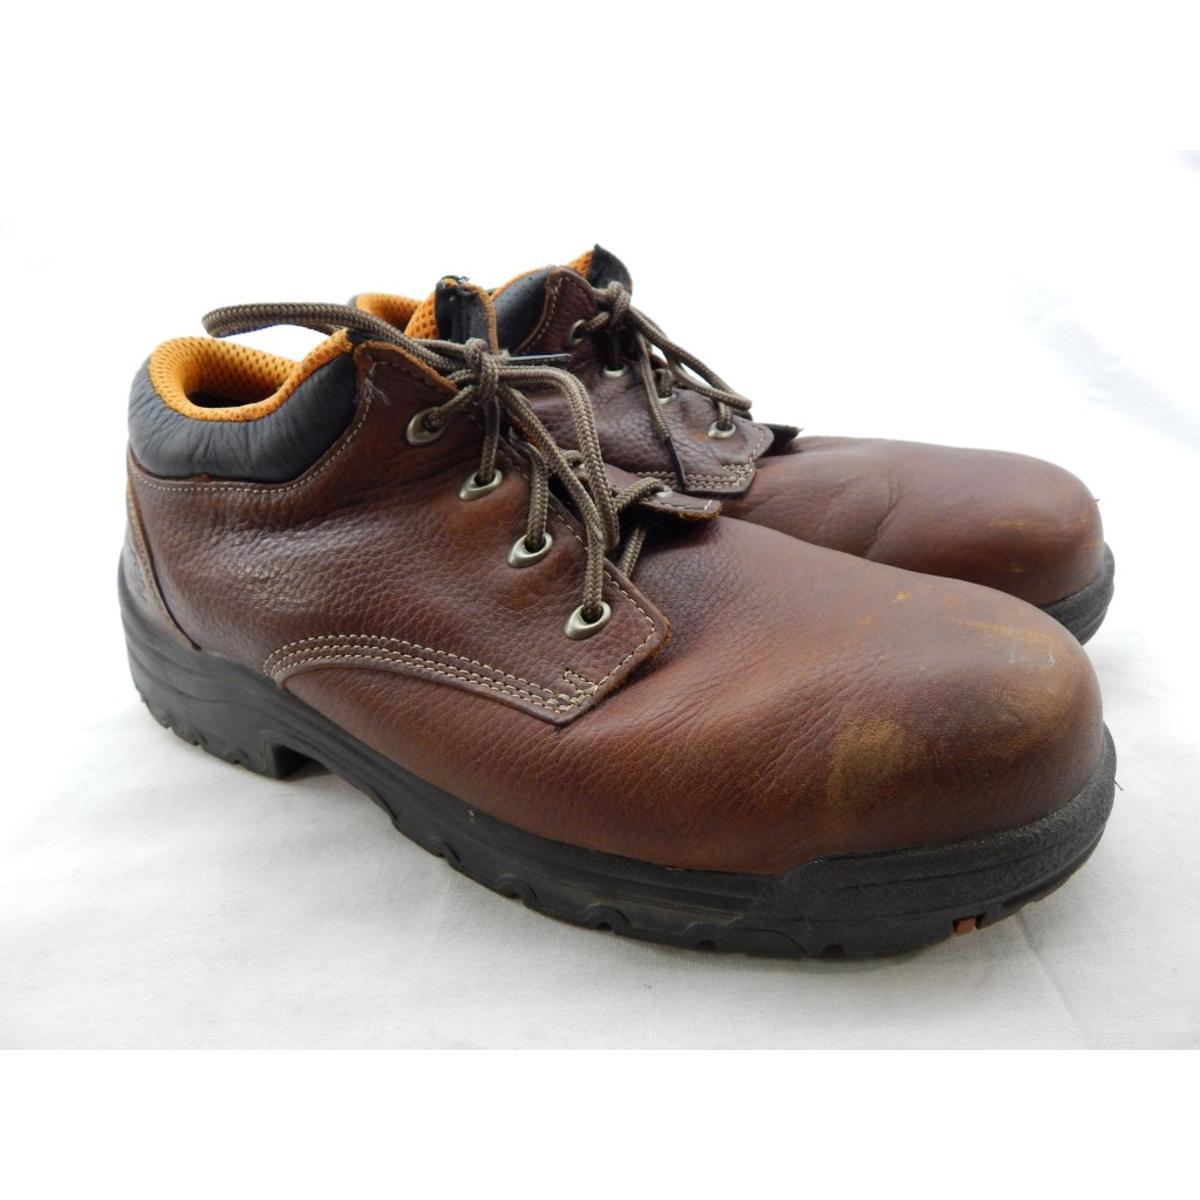 Details about Timberland Pro Titan Men's Brown Steel Toe Work Shoes 13M